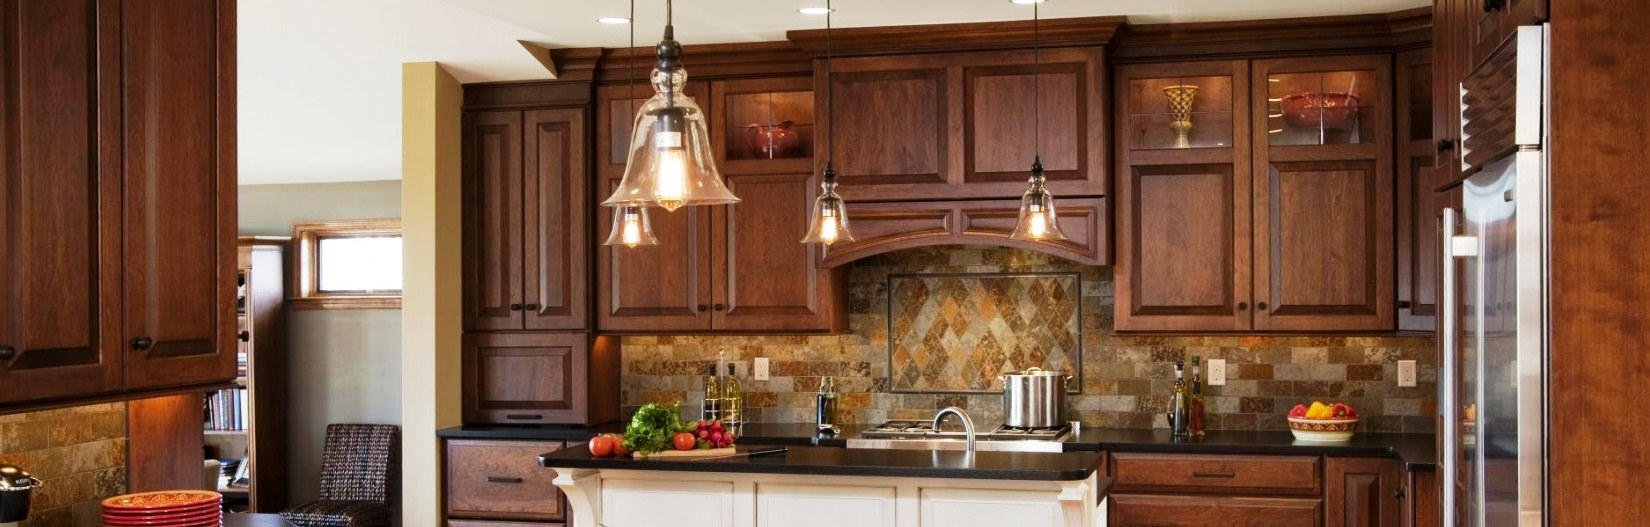 Quality custom cabinets furniture and woodwork - Superior Craftsmanship